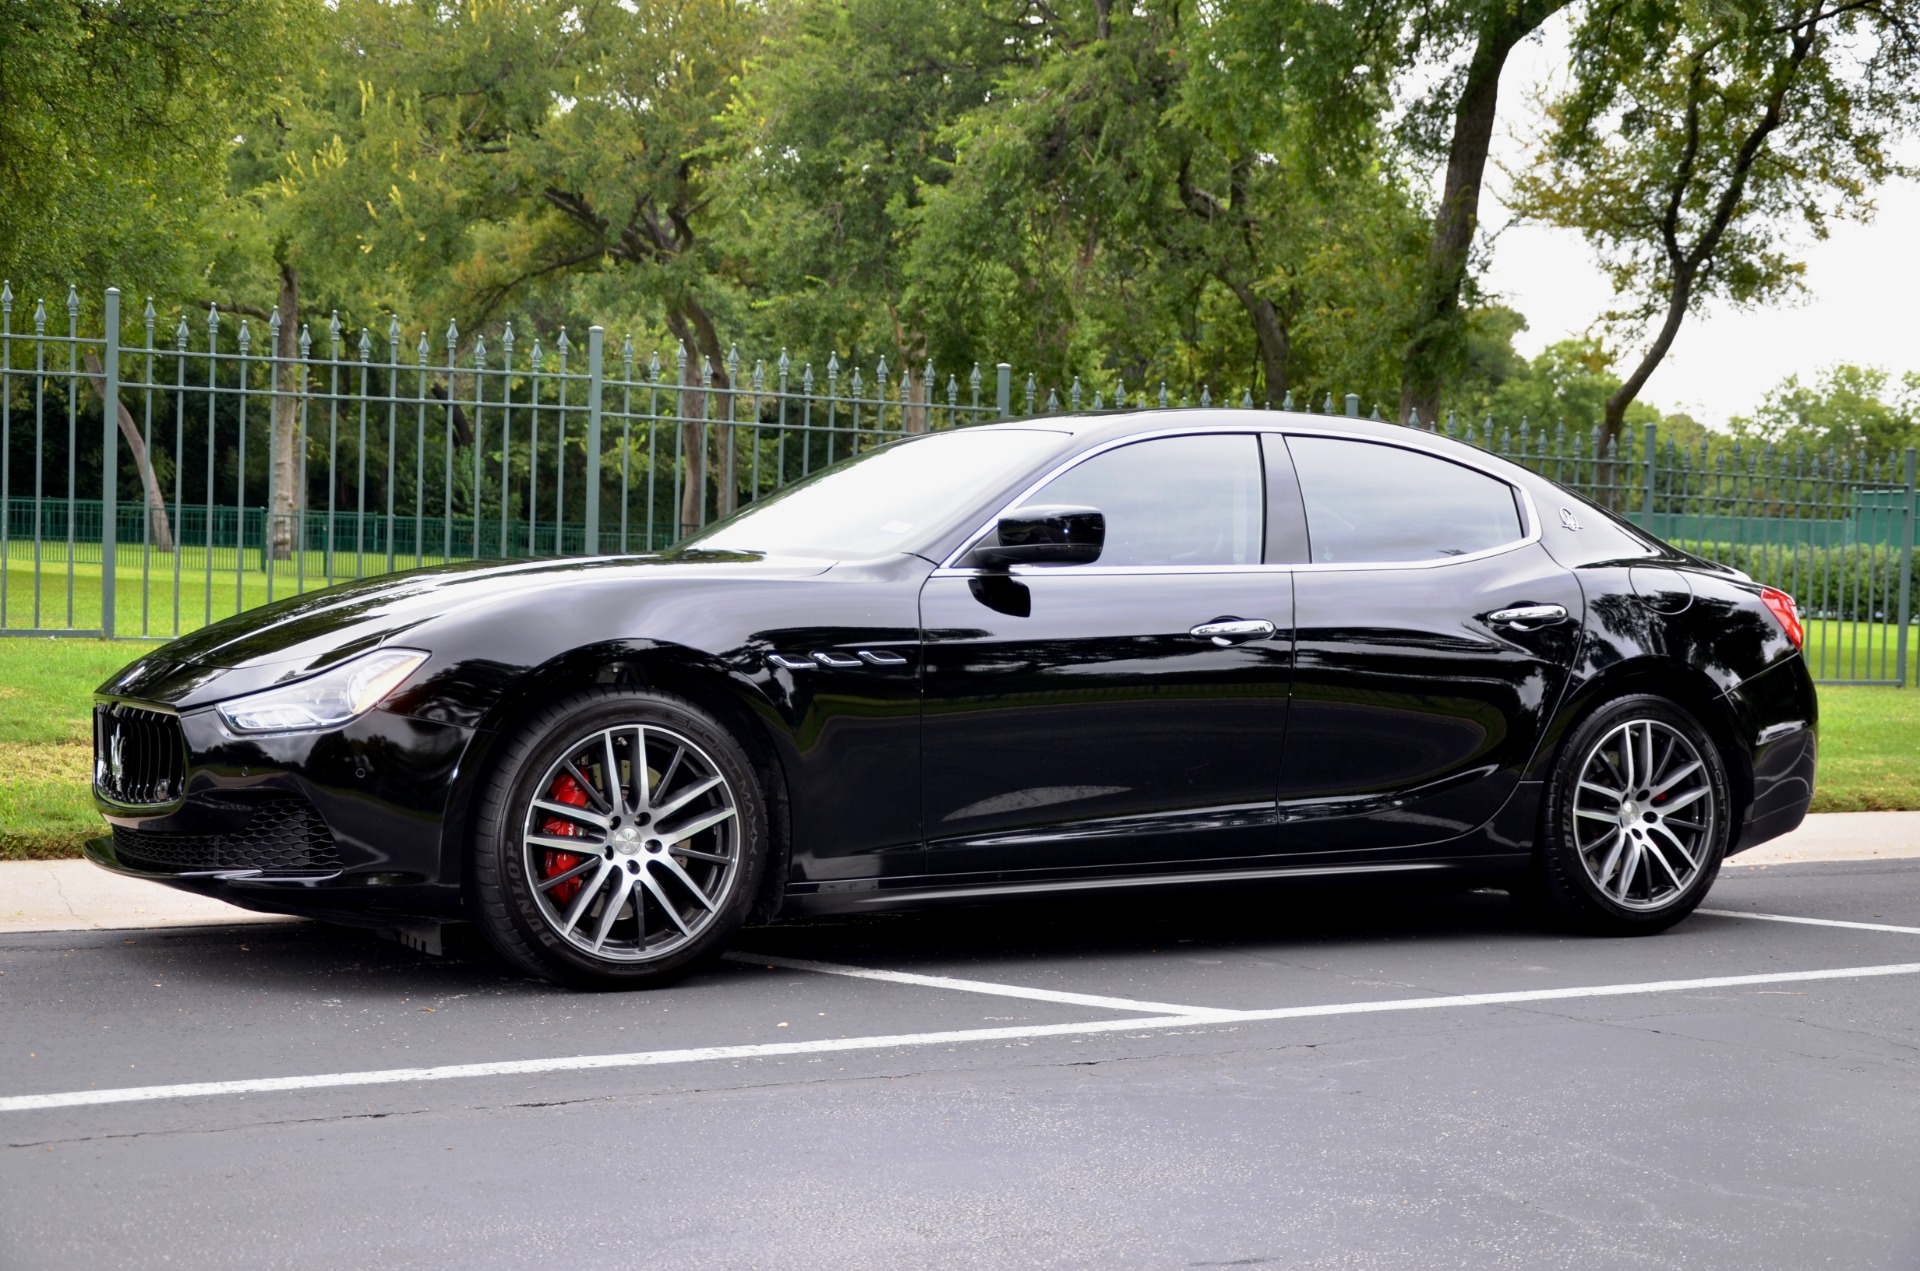 2014 maserati ghibli s q4 stock 14masghib for sale near dallas tx tx maserati dealer. Black Bedroom Furniture Sets. Home Design Ideas